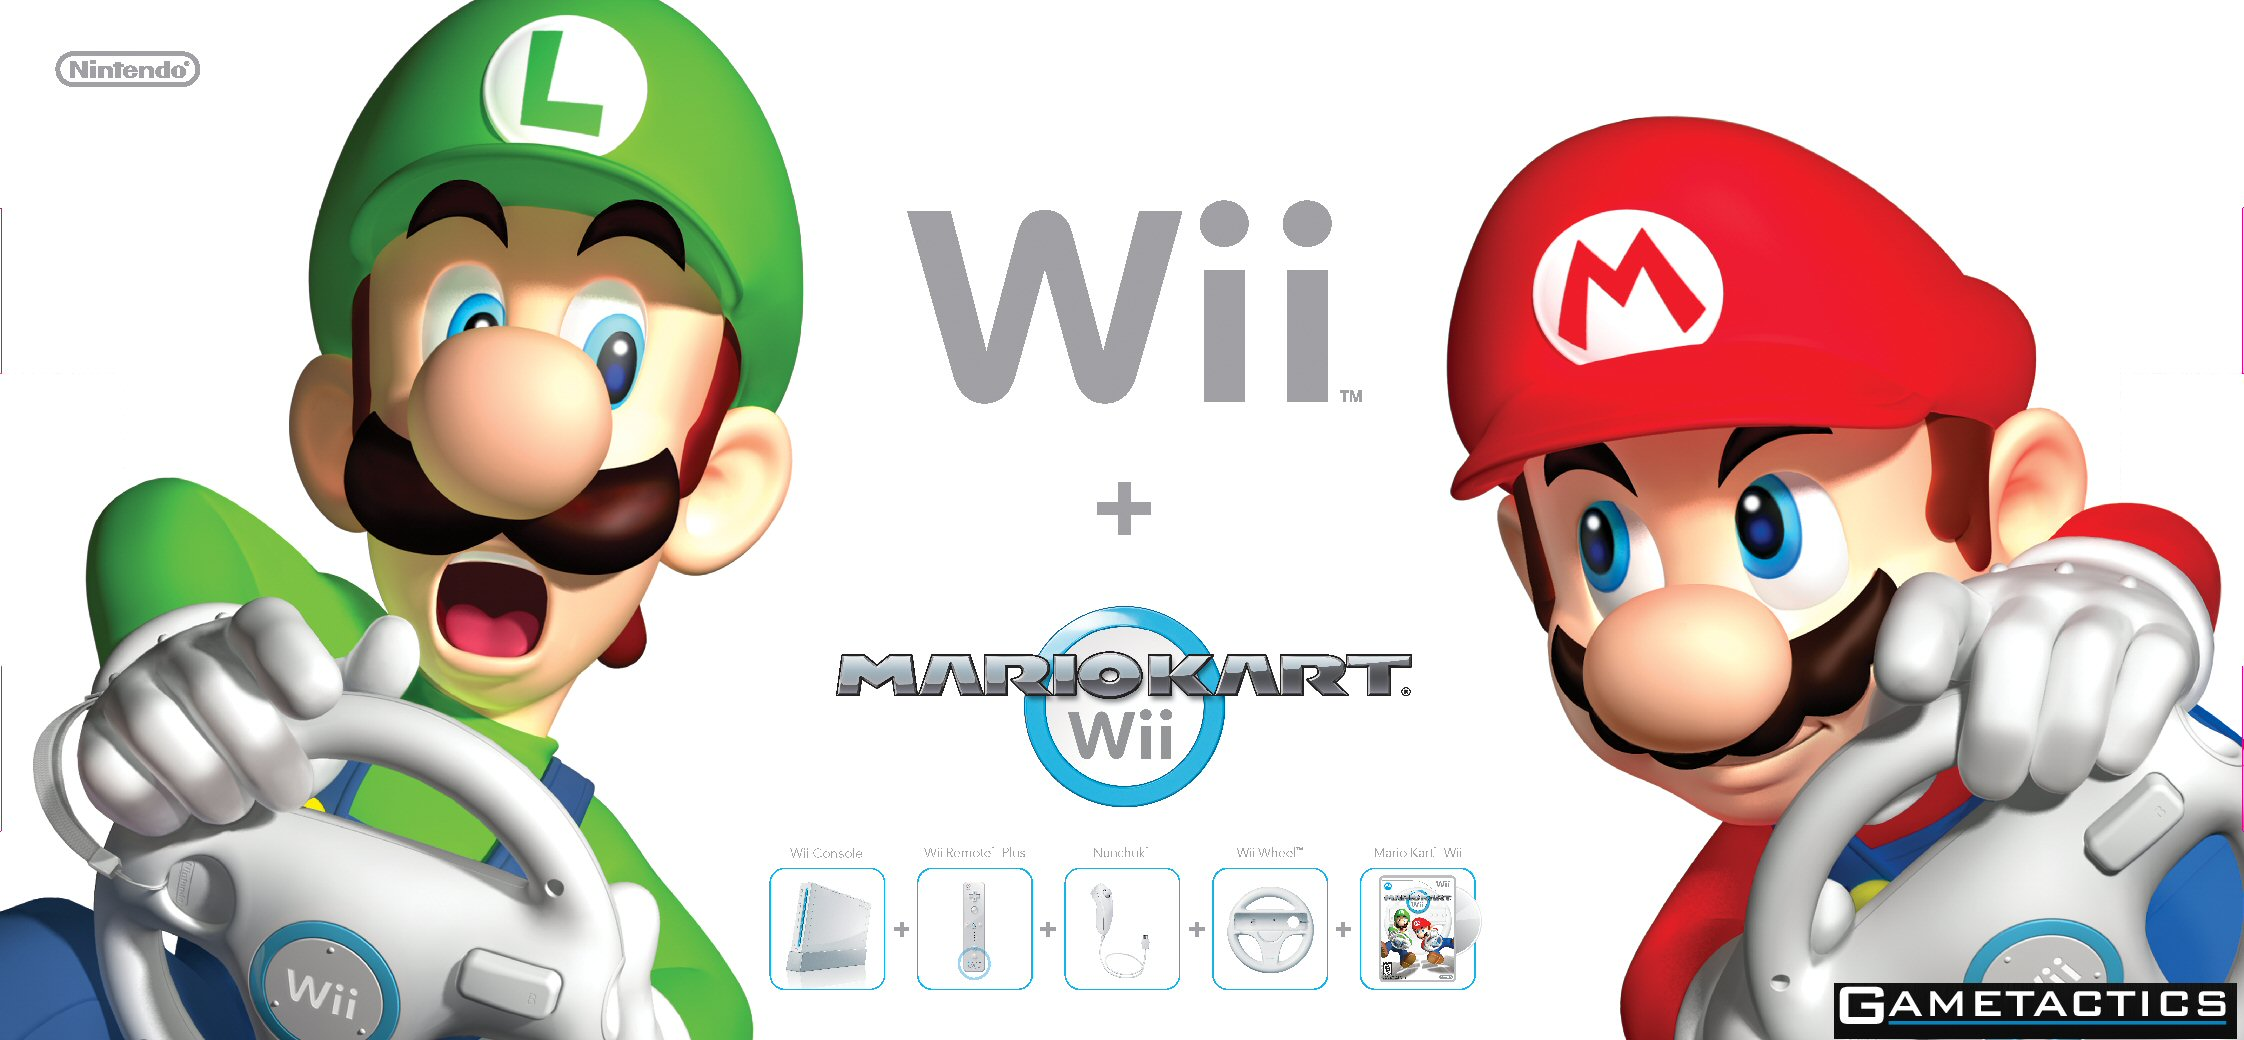 brand new nintendo wii console white mario kart. Black Bedroom Furniture Sets. Home Design Ideas